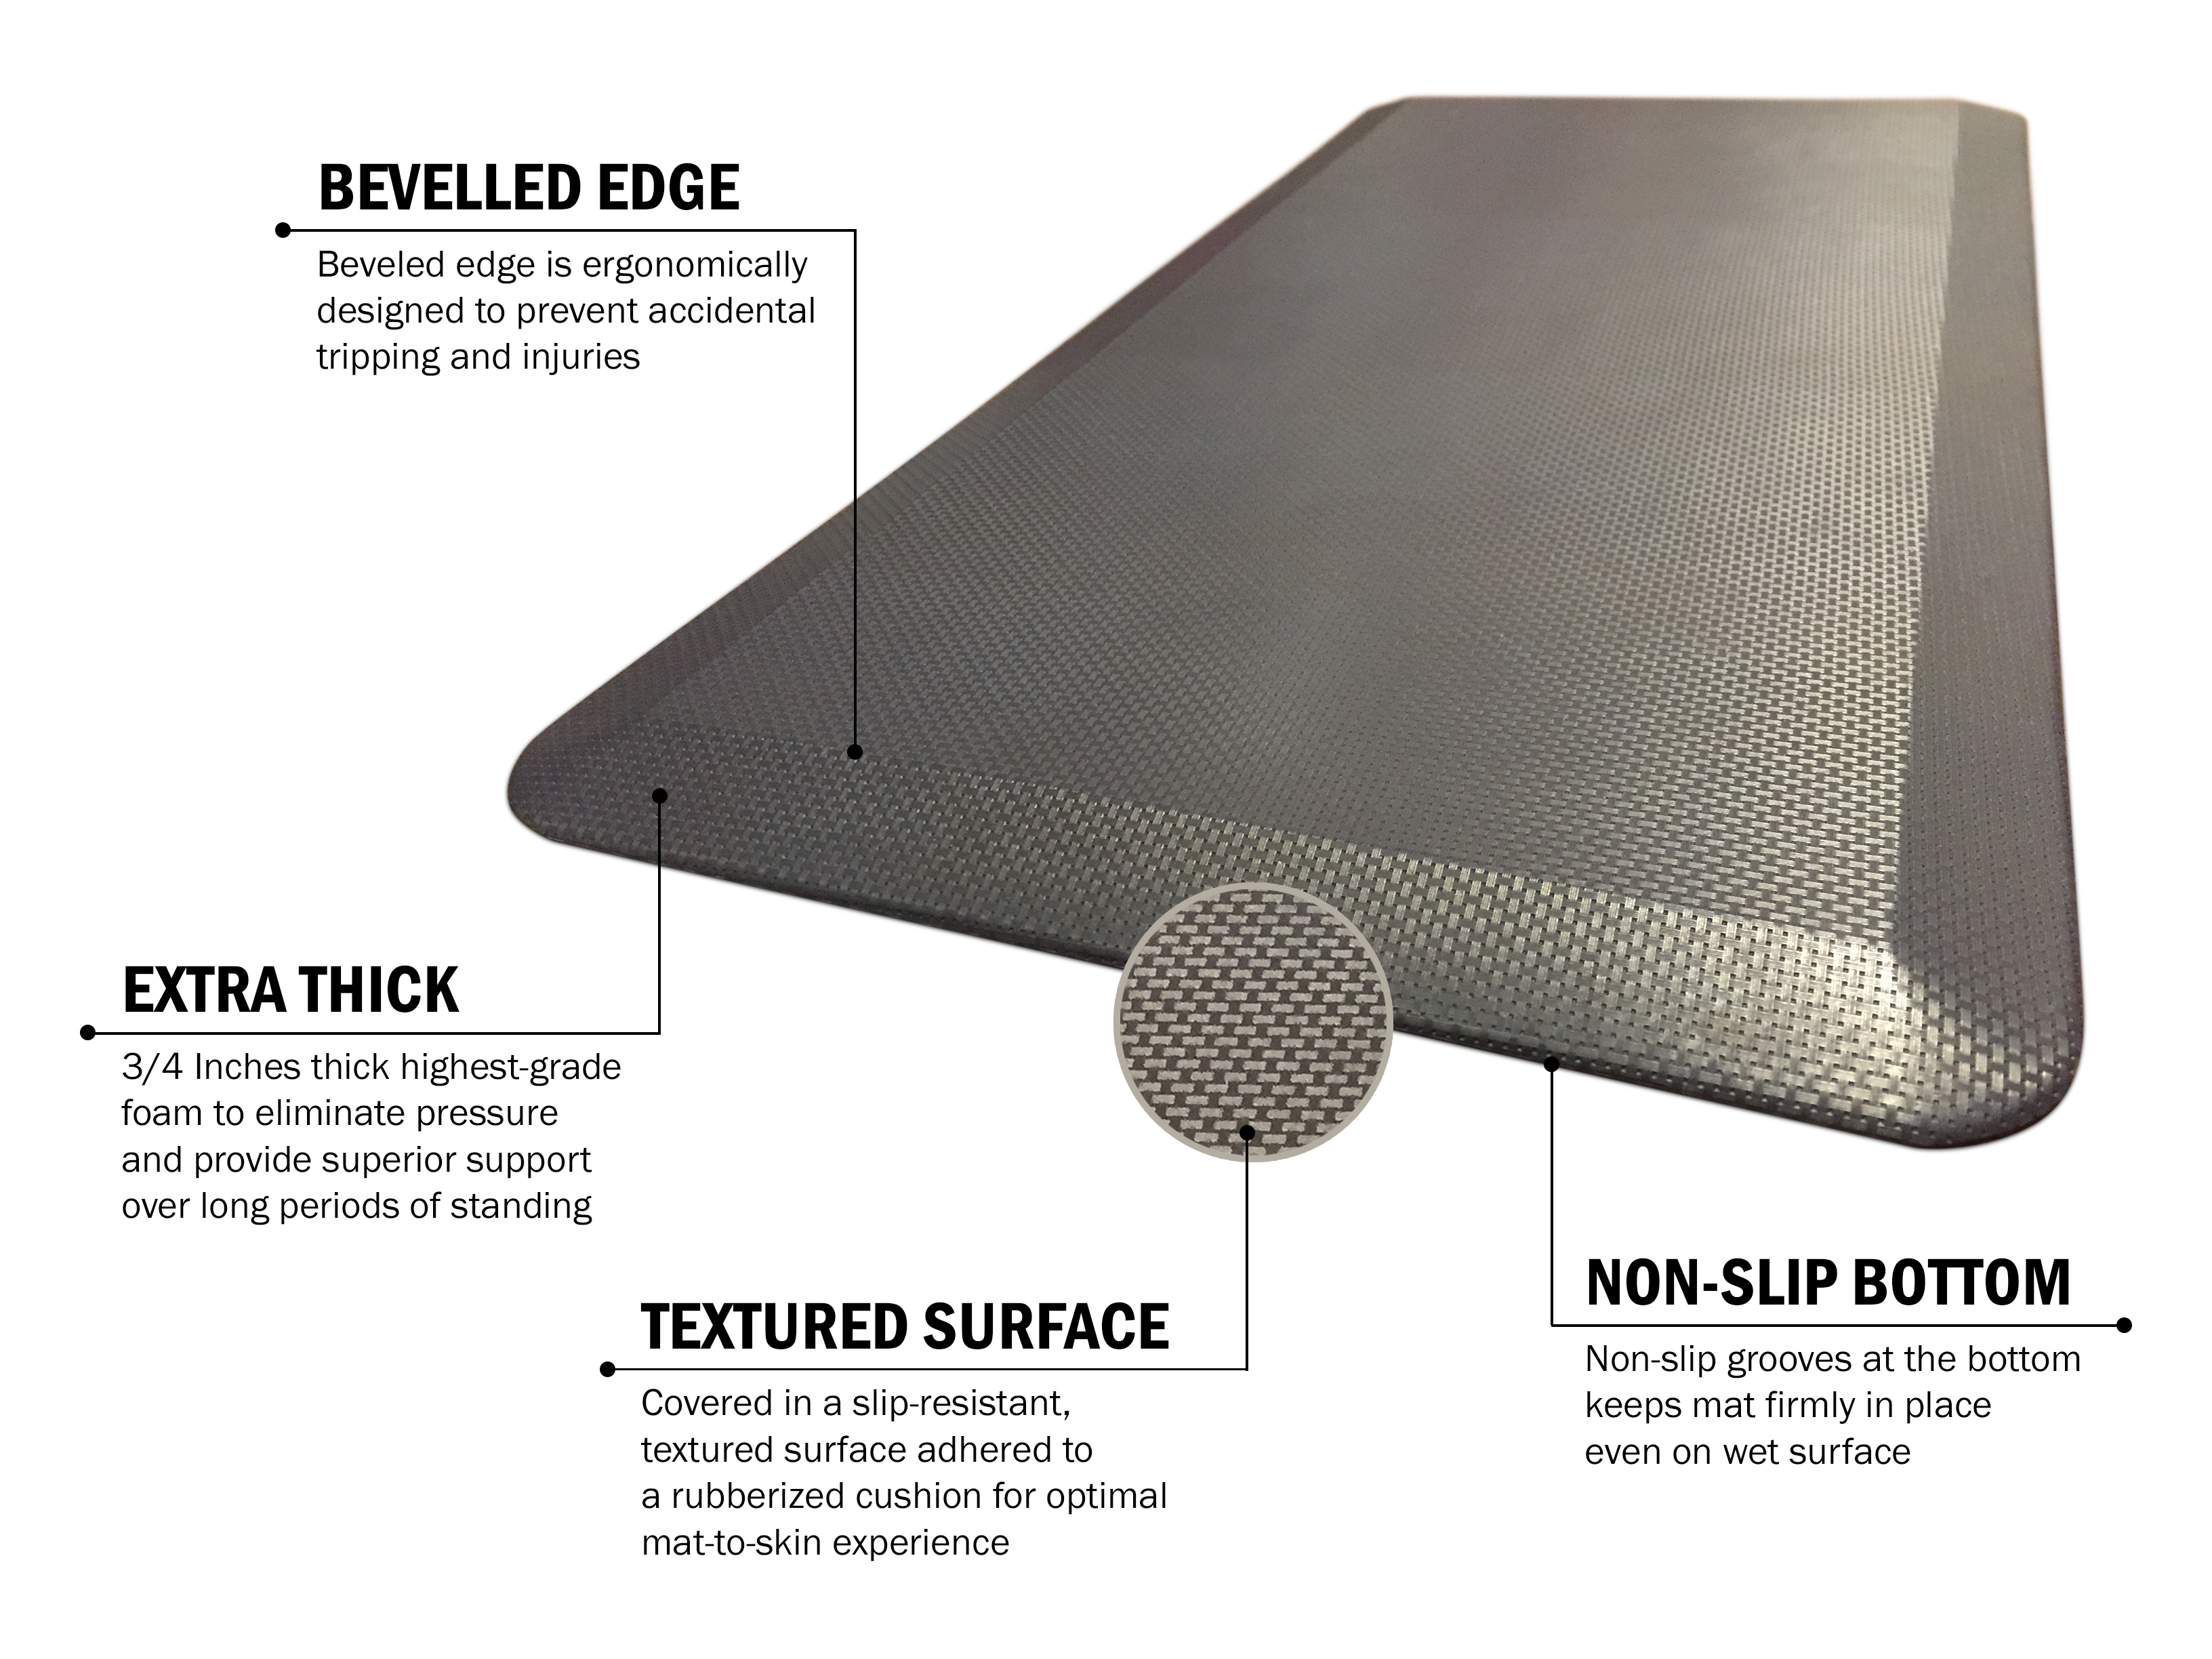 The Stuff4Homes Anti-Fatigue Mat